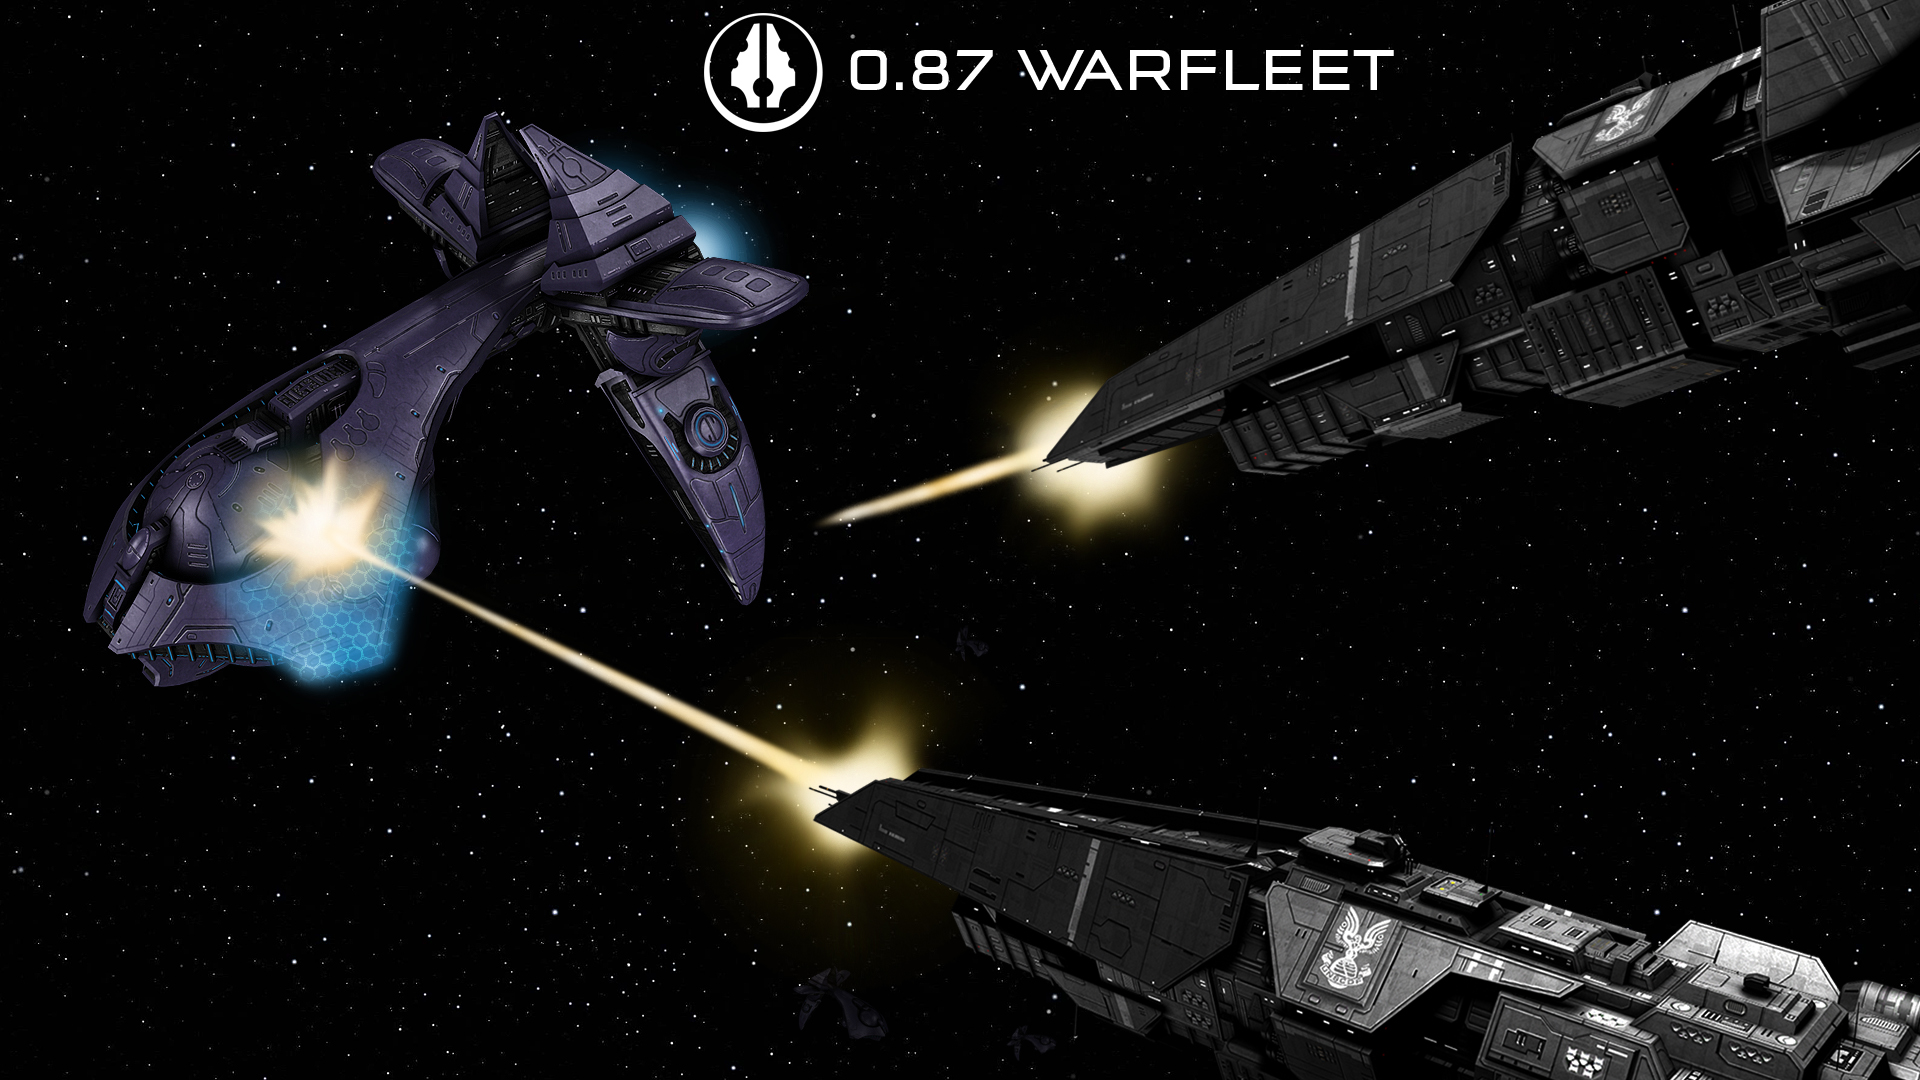 SotP 0.87 Warfleet Update